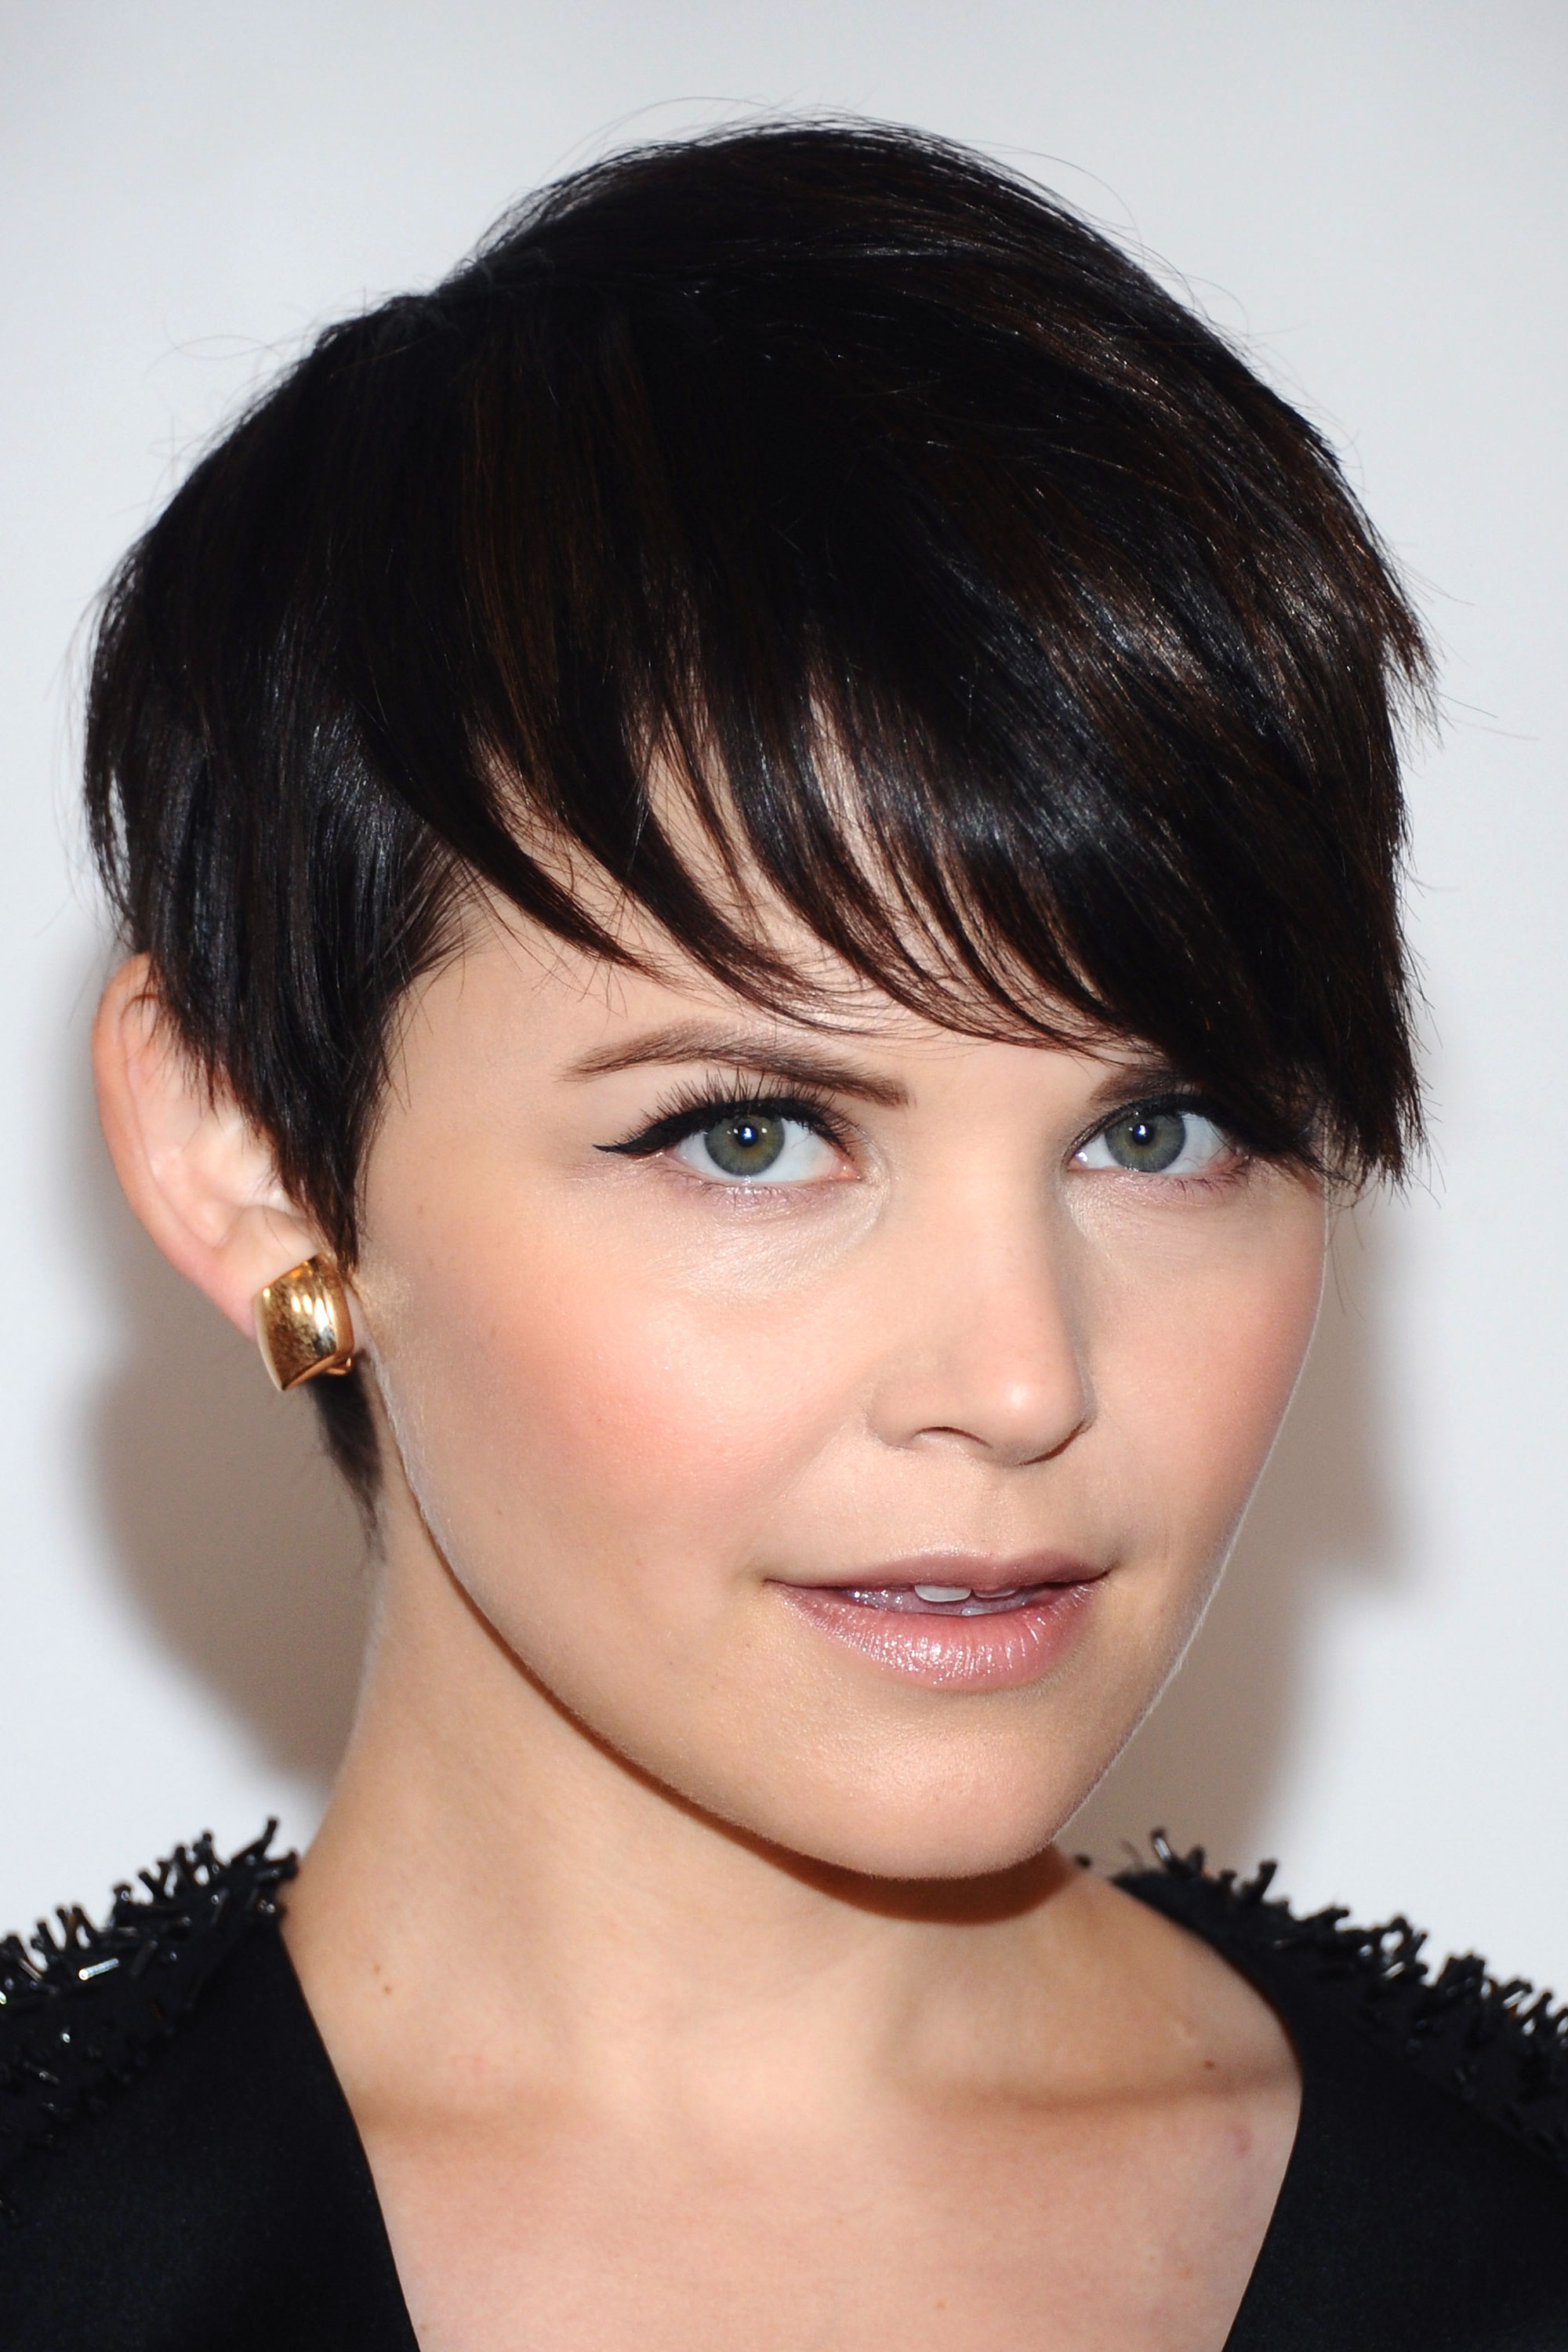 35 Facts To Know Before Doing Pixie Cut For Women Hairstyles For Woman